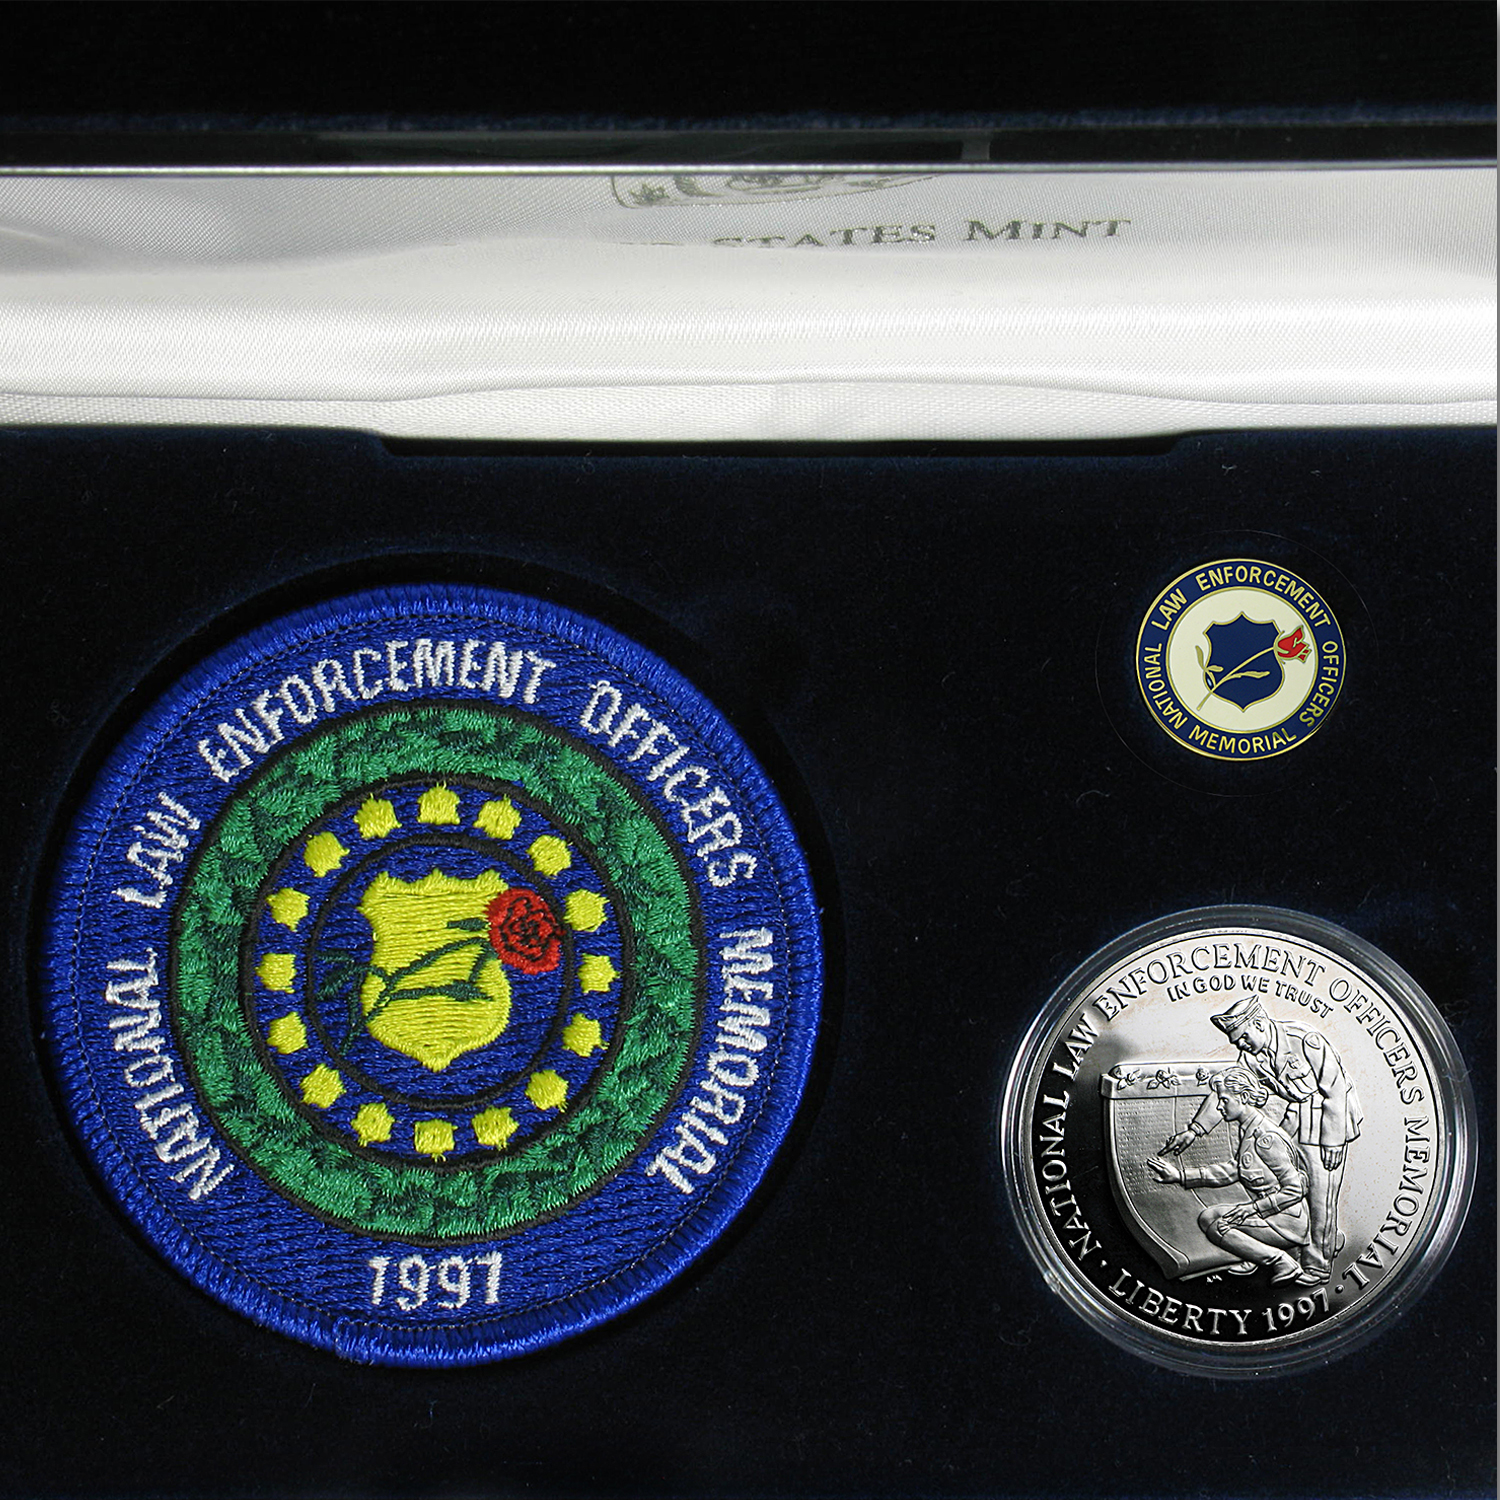 1997-P Law Enforcement $1 Silver Commem Proof (w/Patch & Pin)